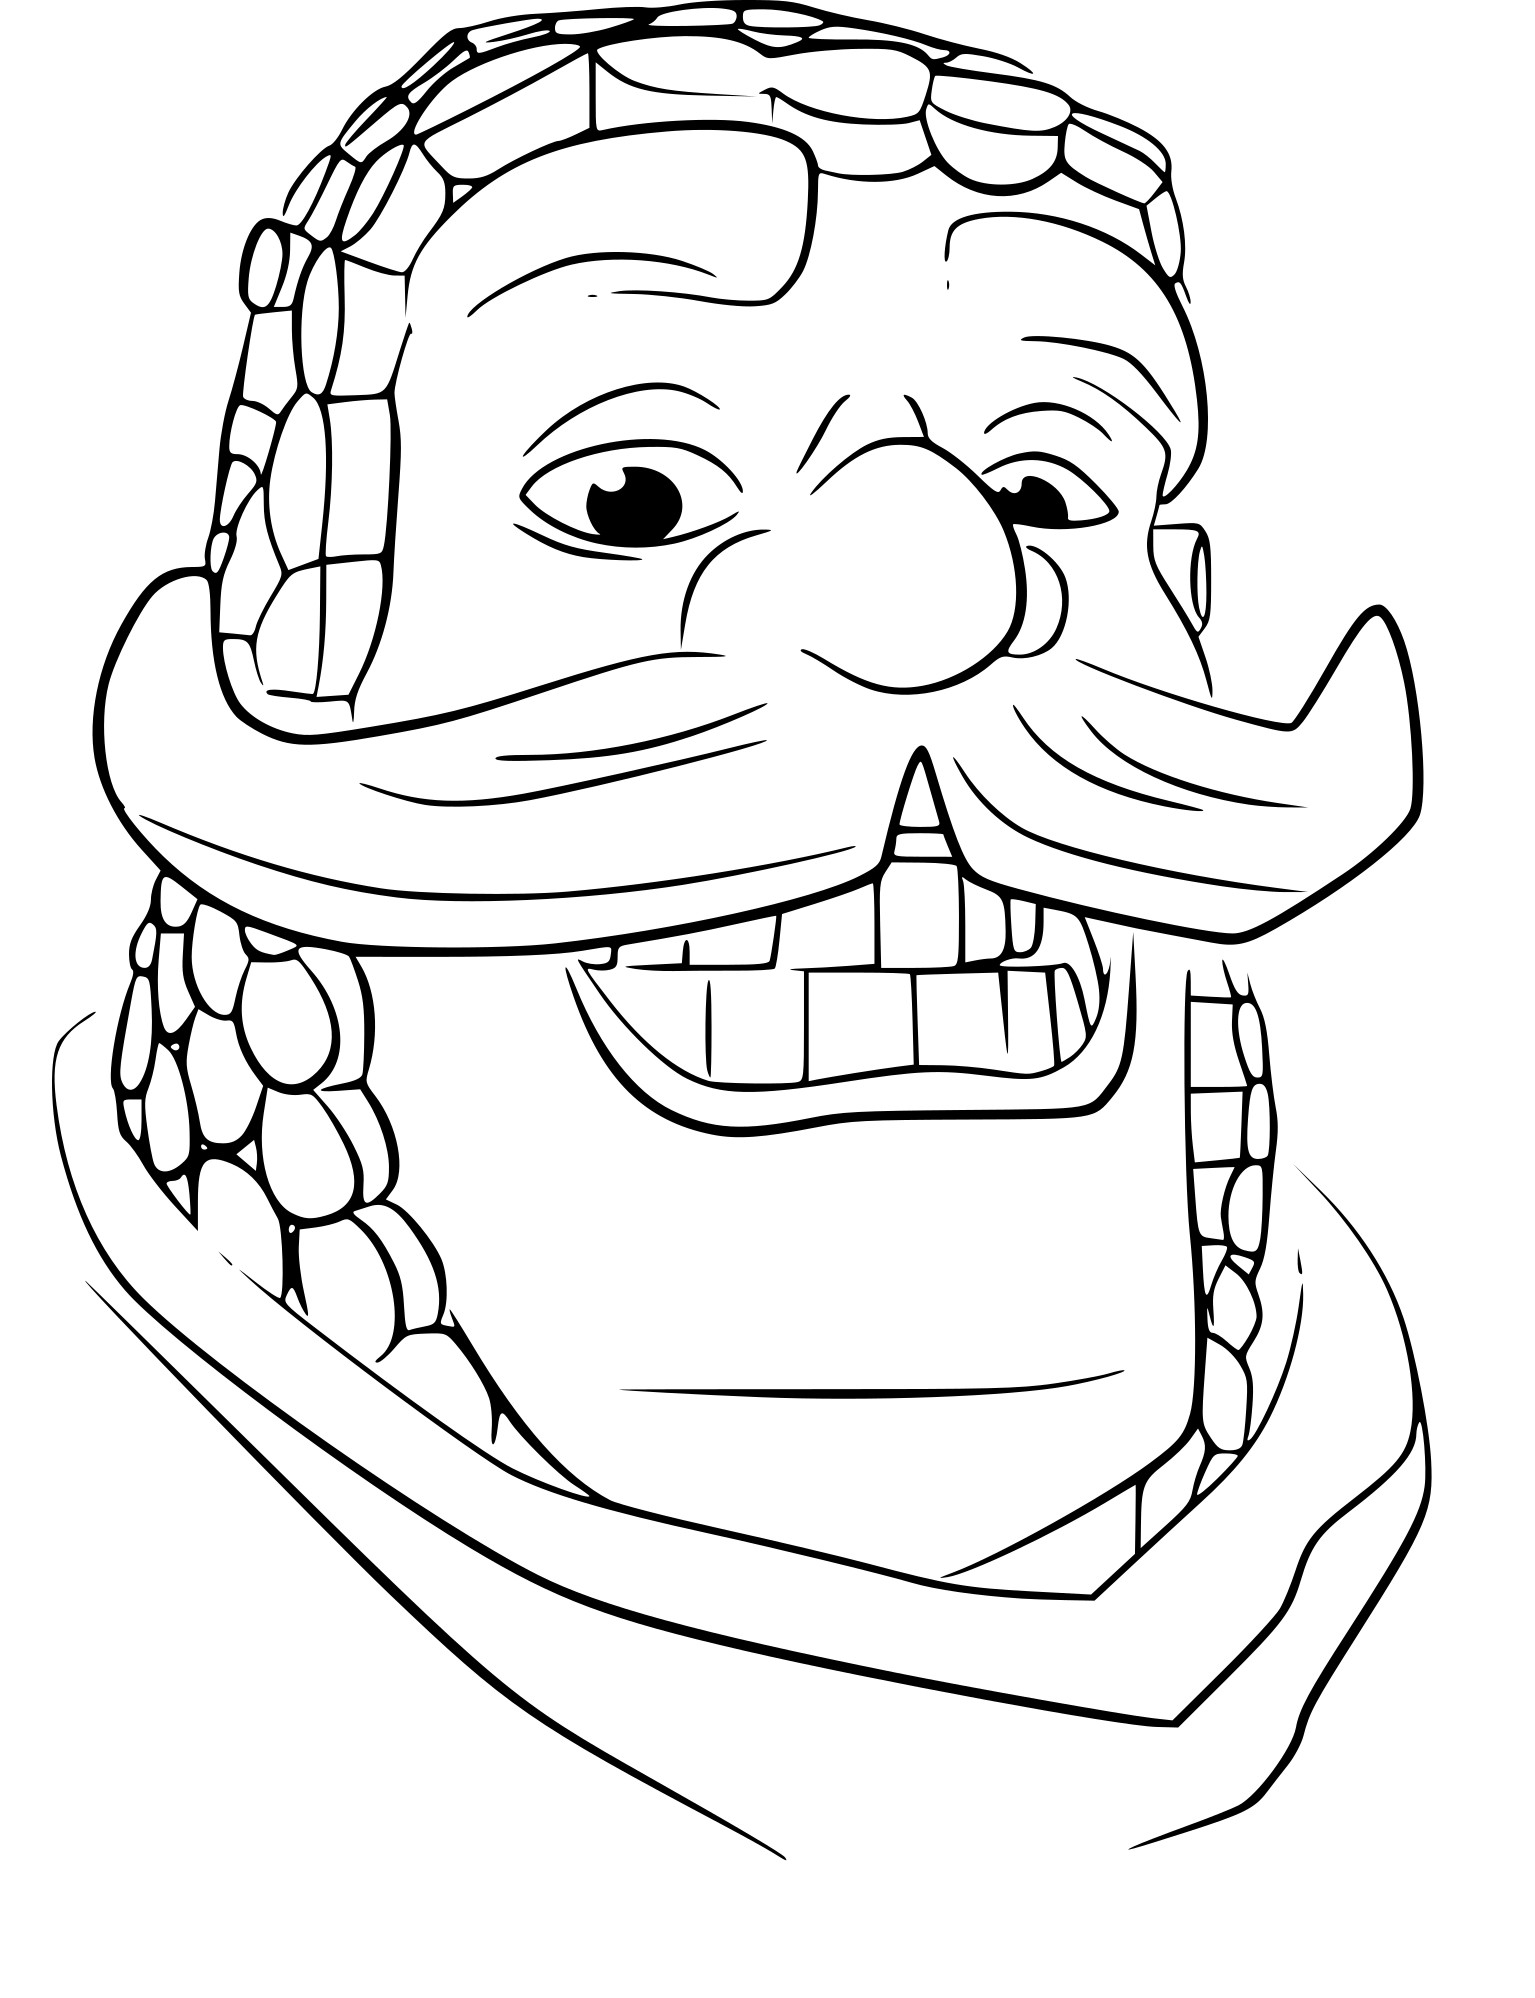 Coloriage Clash Royale chevalier